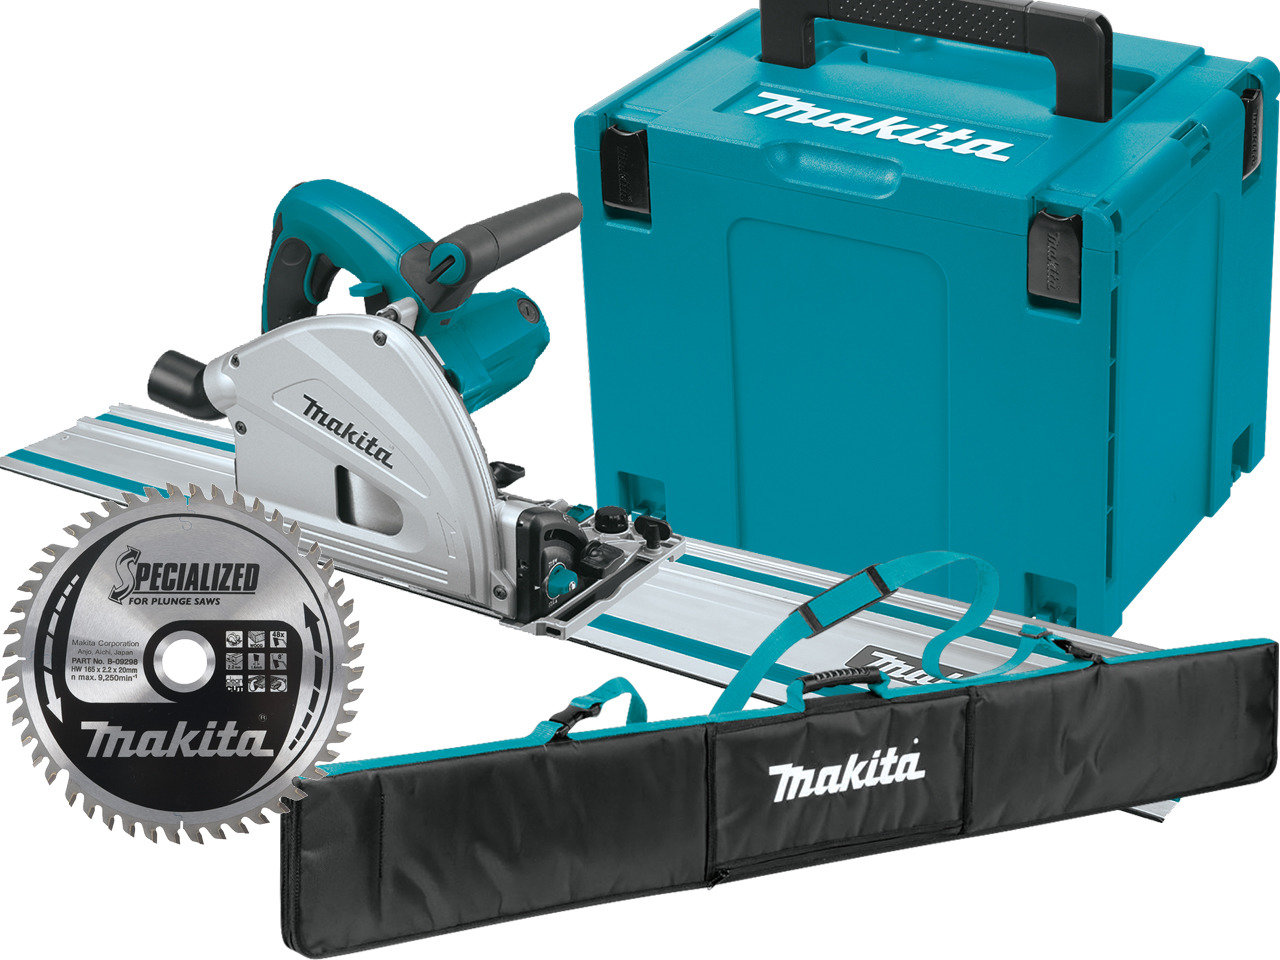 makita plunge saw kit with guide rails